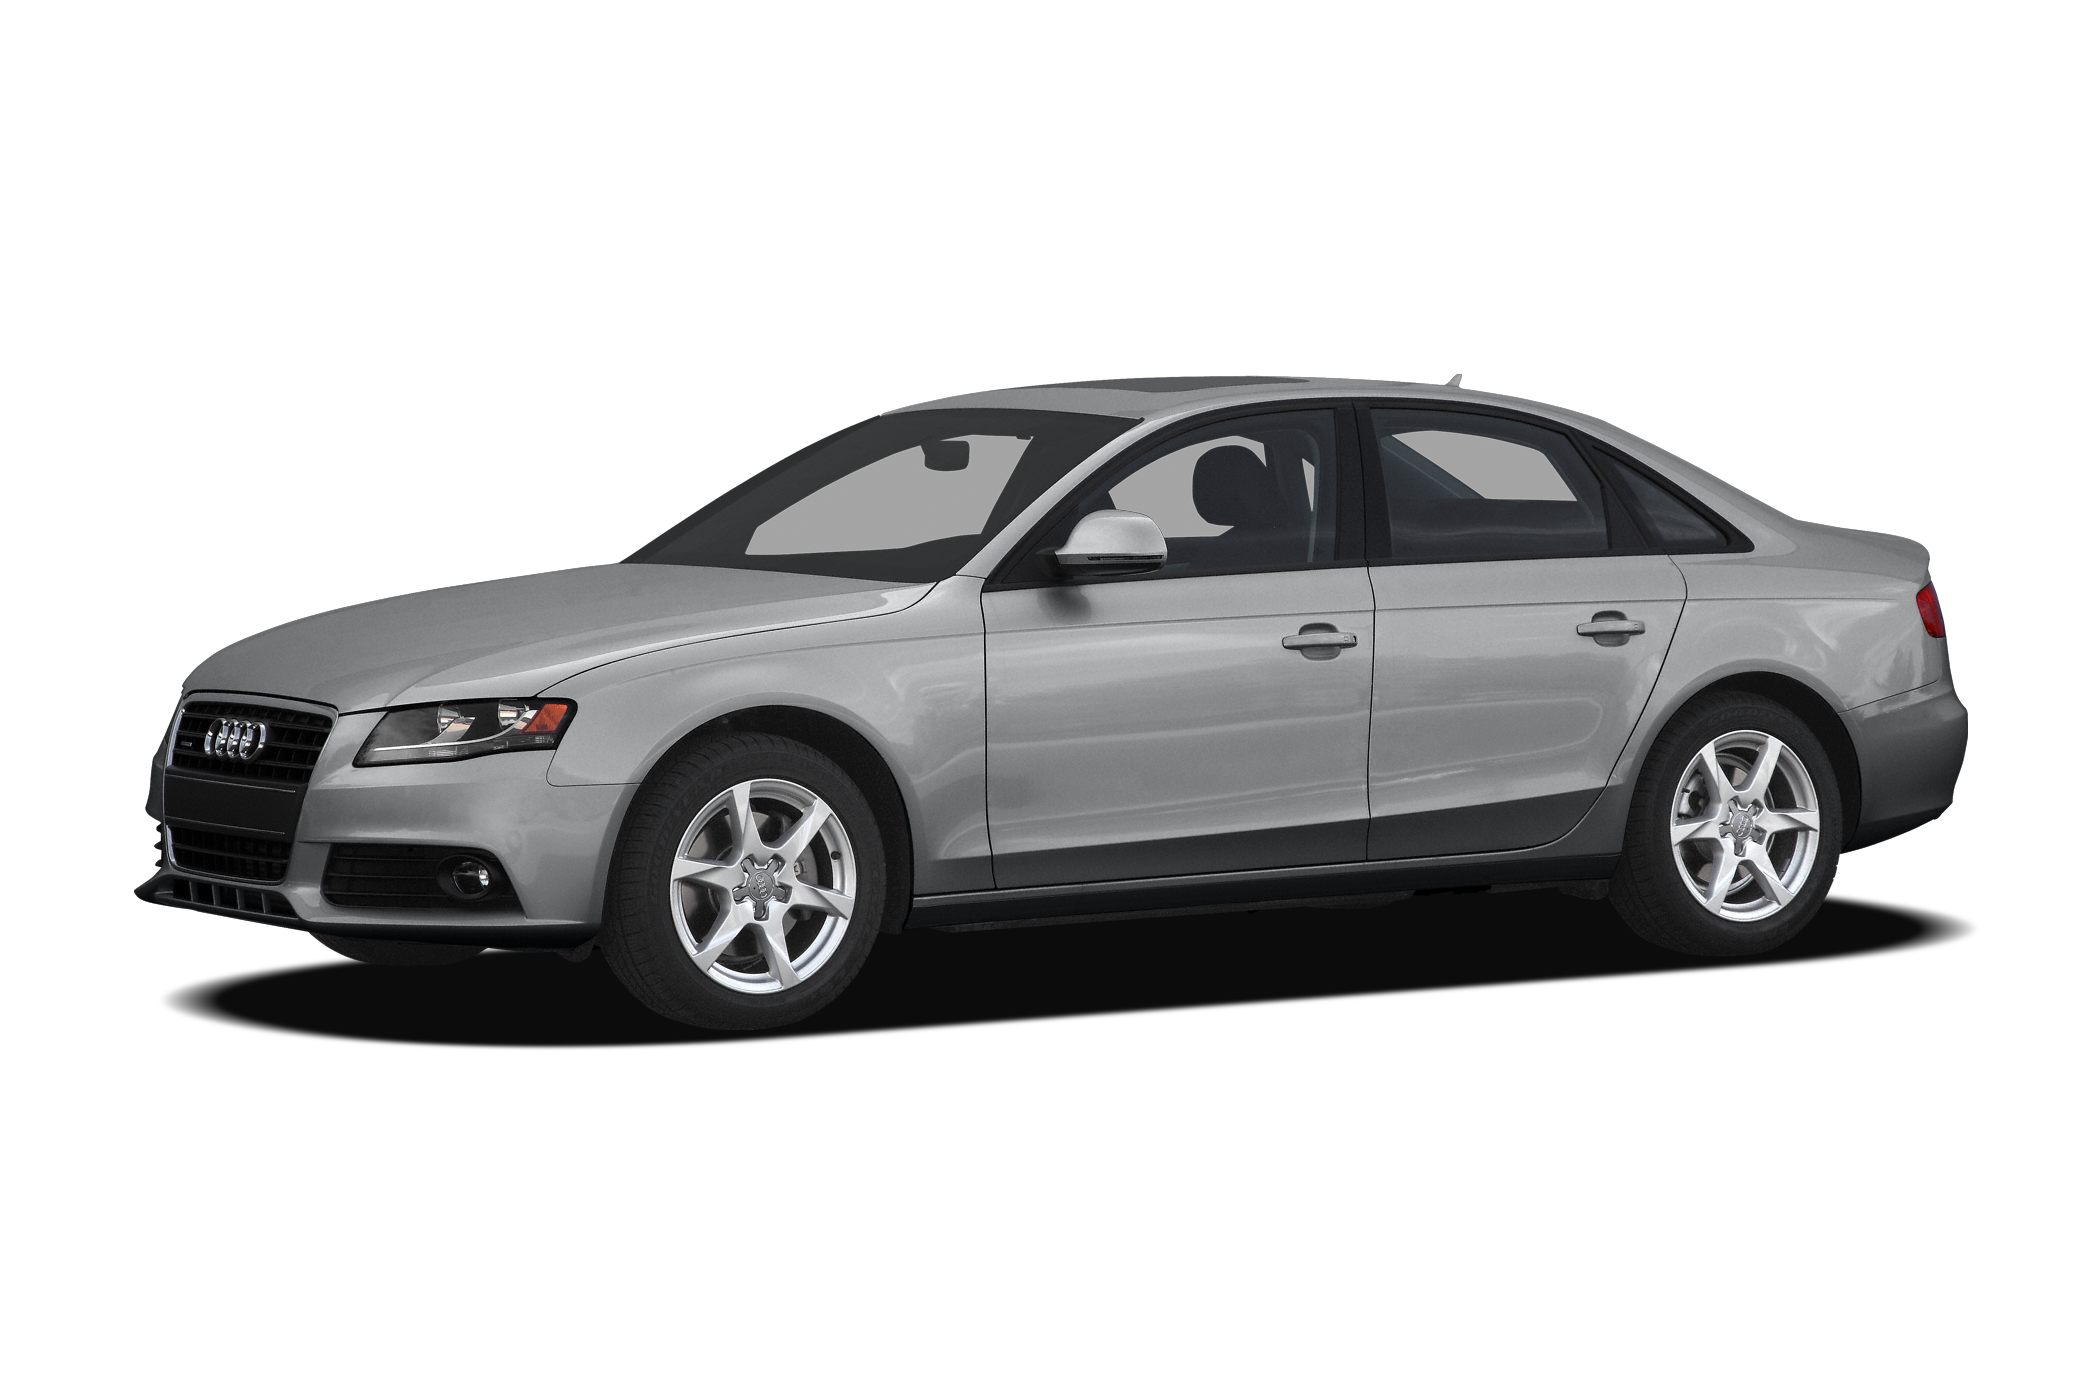 2009 Audi A4 20T quattro Premium Drive this awesome AUDI QUATRO AWD with LOW miles This AUDI is